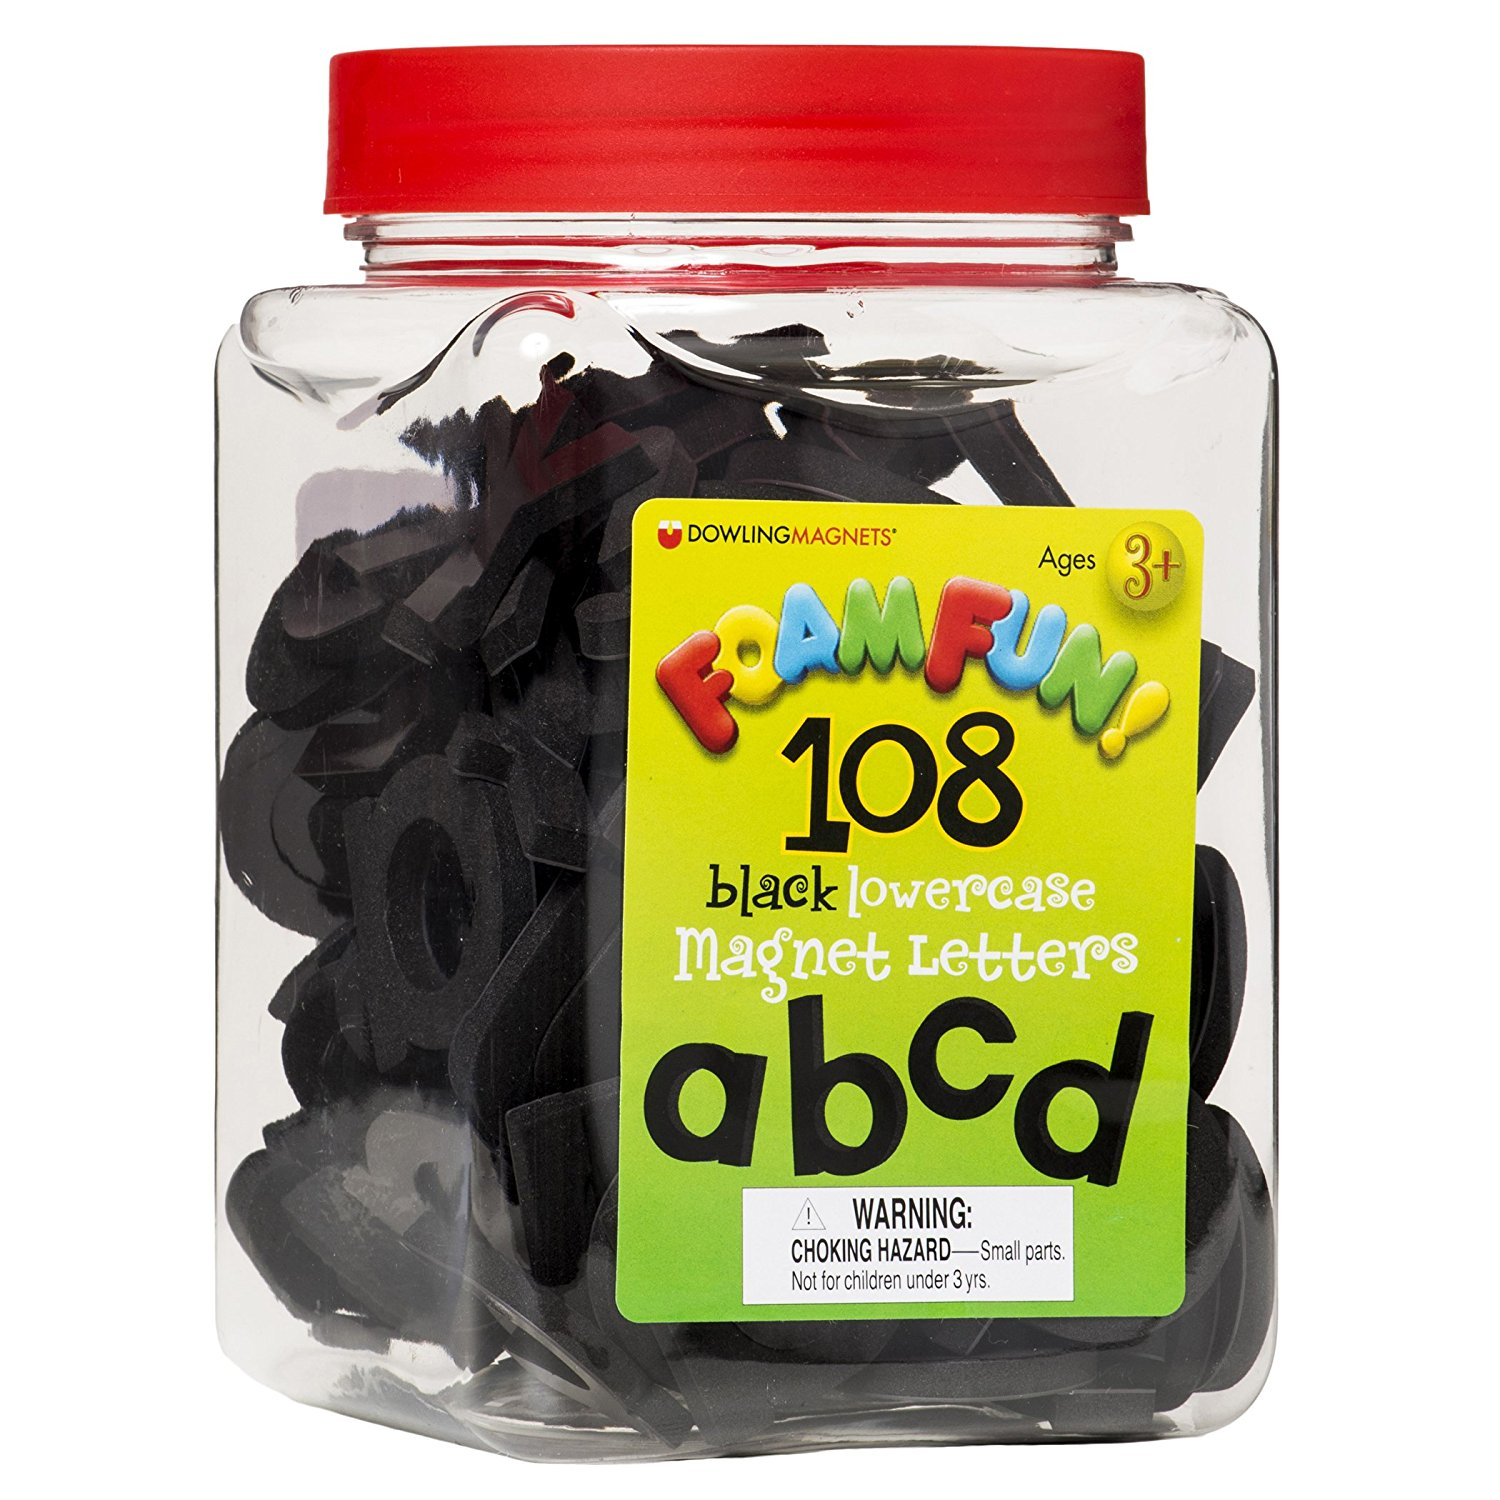 Lowercase Black Magnet Letters, Great contrast with Magnetic whiteboards By Dowling Magnets by